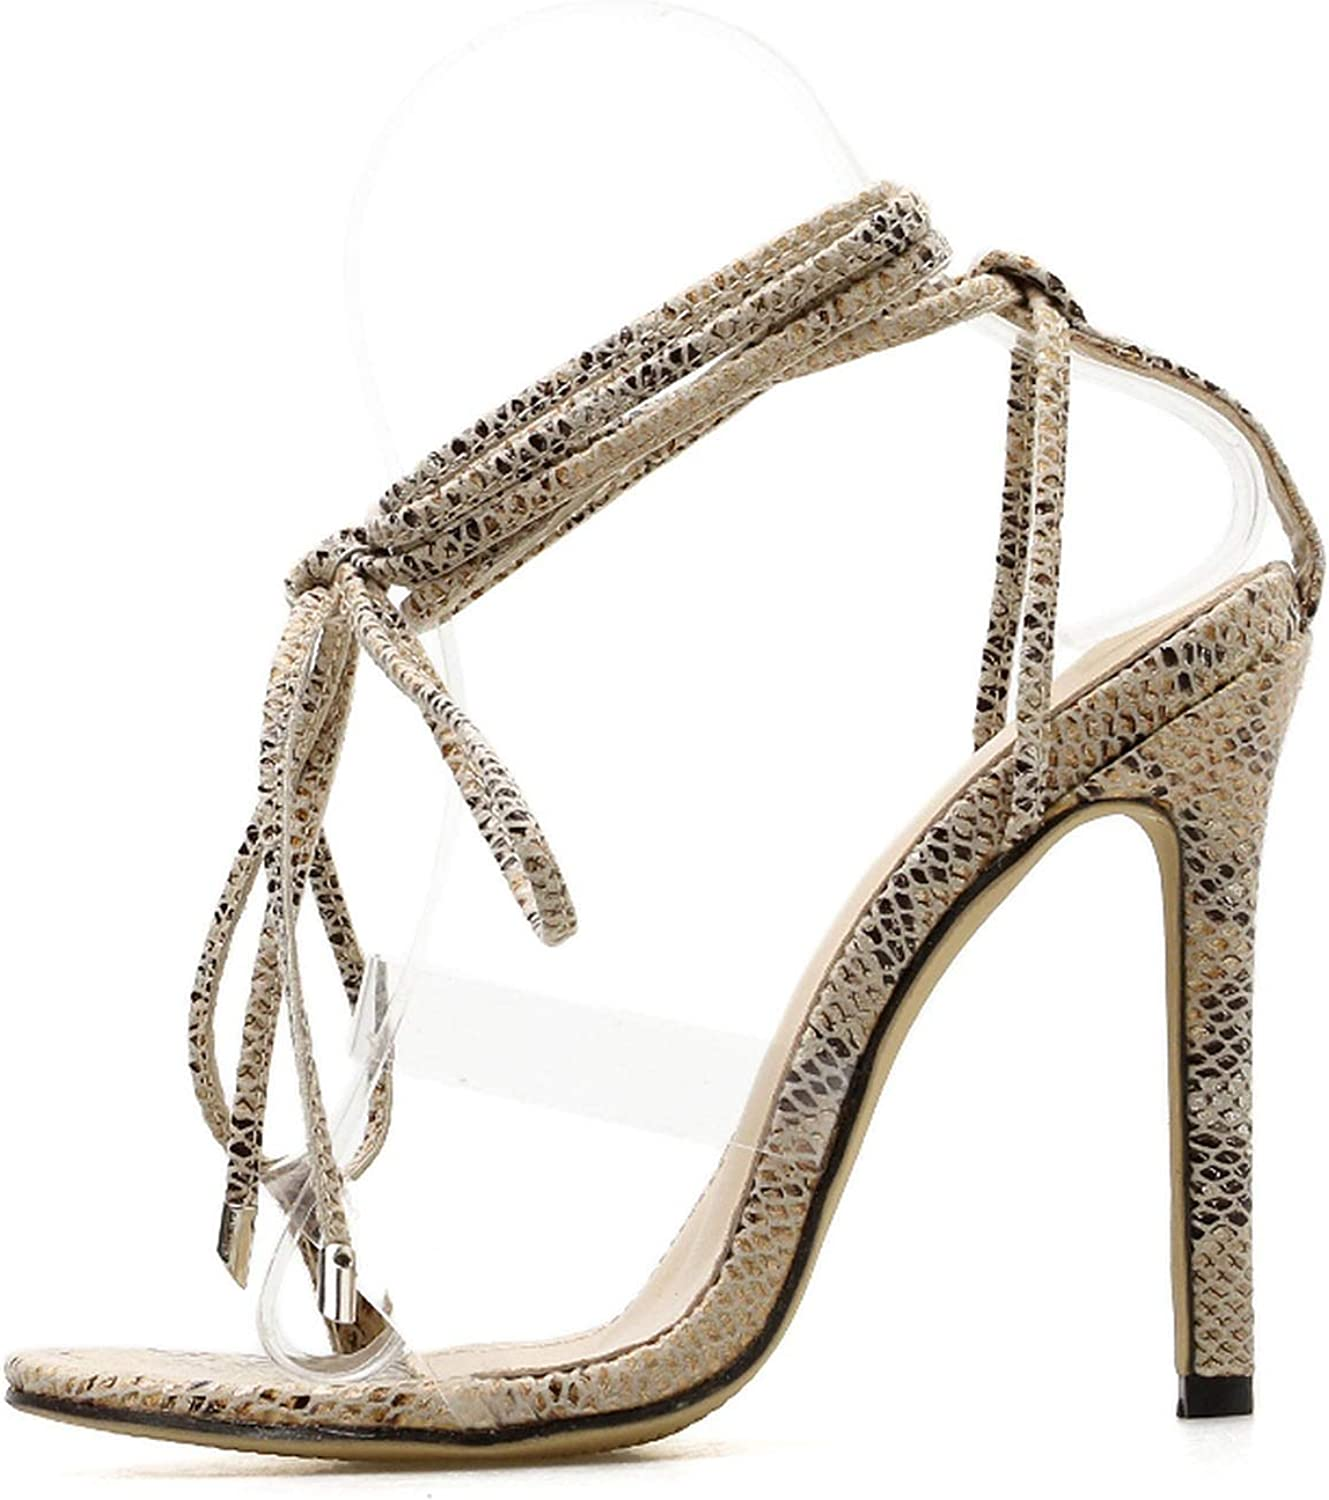 New Summer Fashion Snake Skin Ankle Strap Women Sandals Cross-Tied High Heels Lady Pumps Transparent Open Toe Sandals shoes